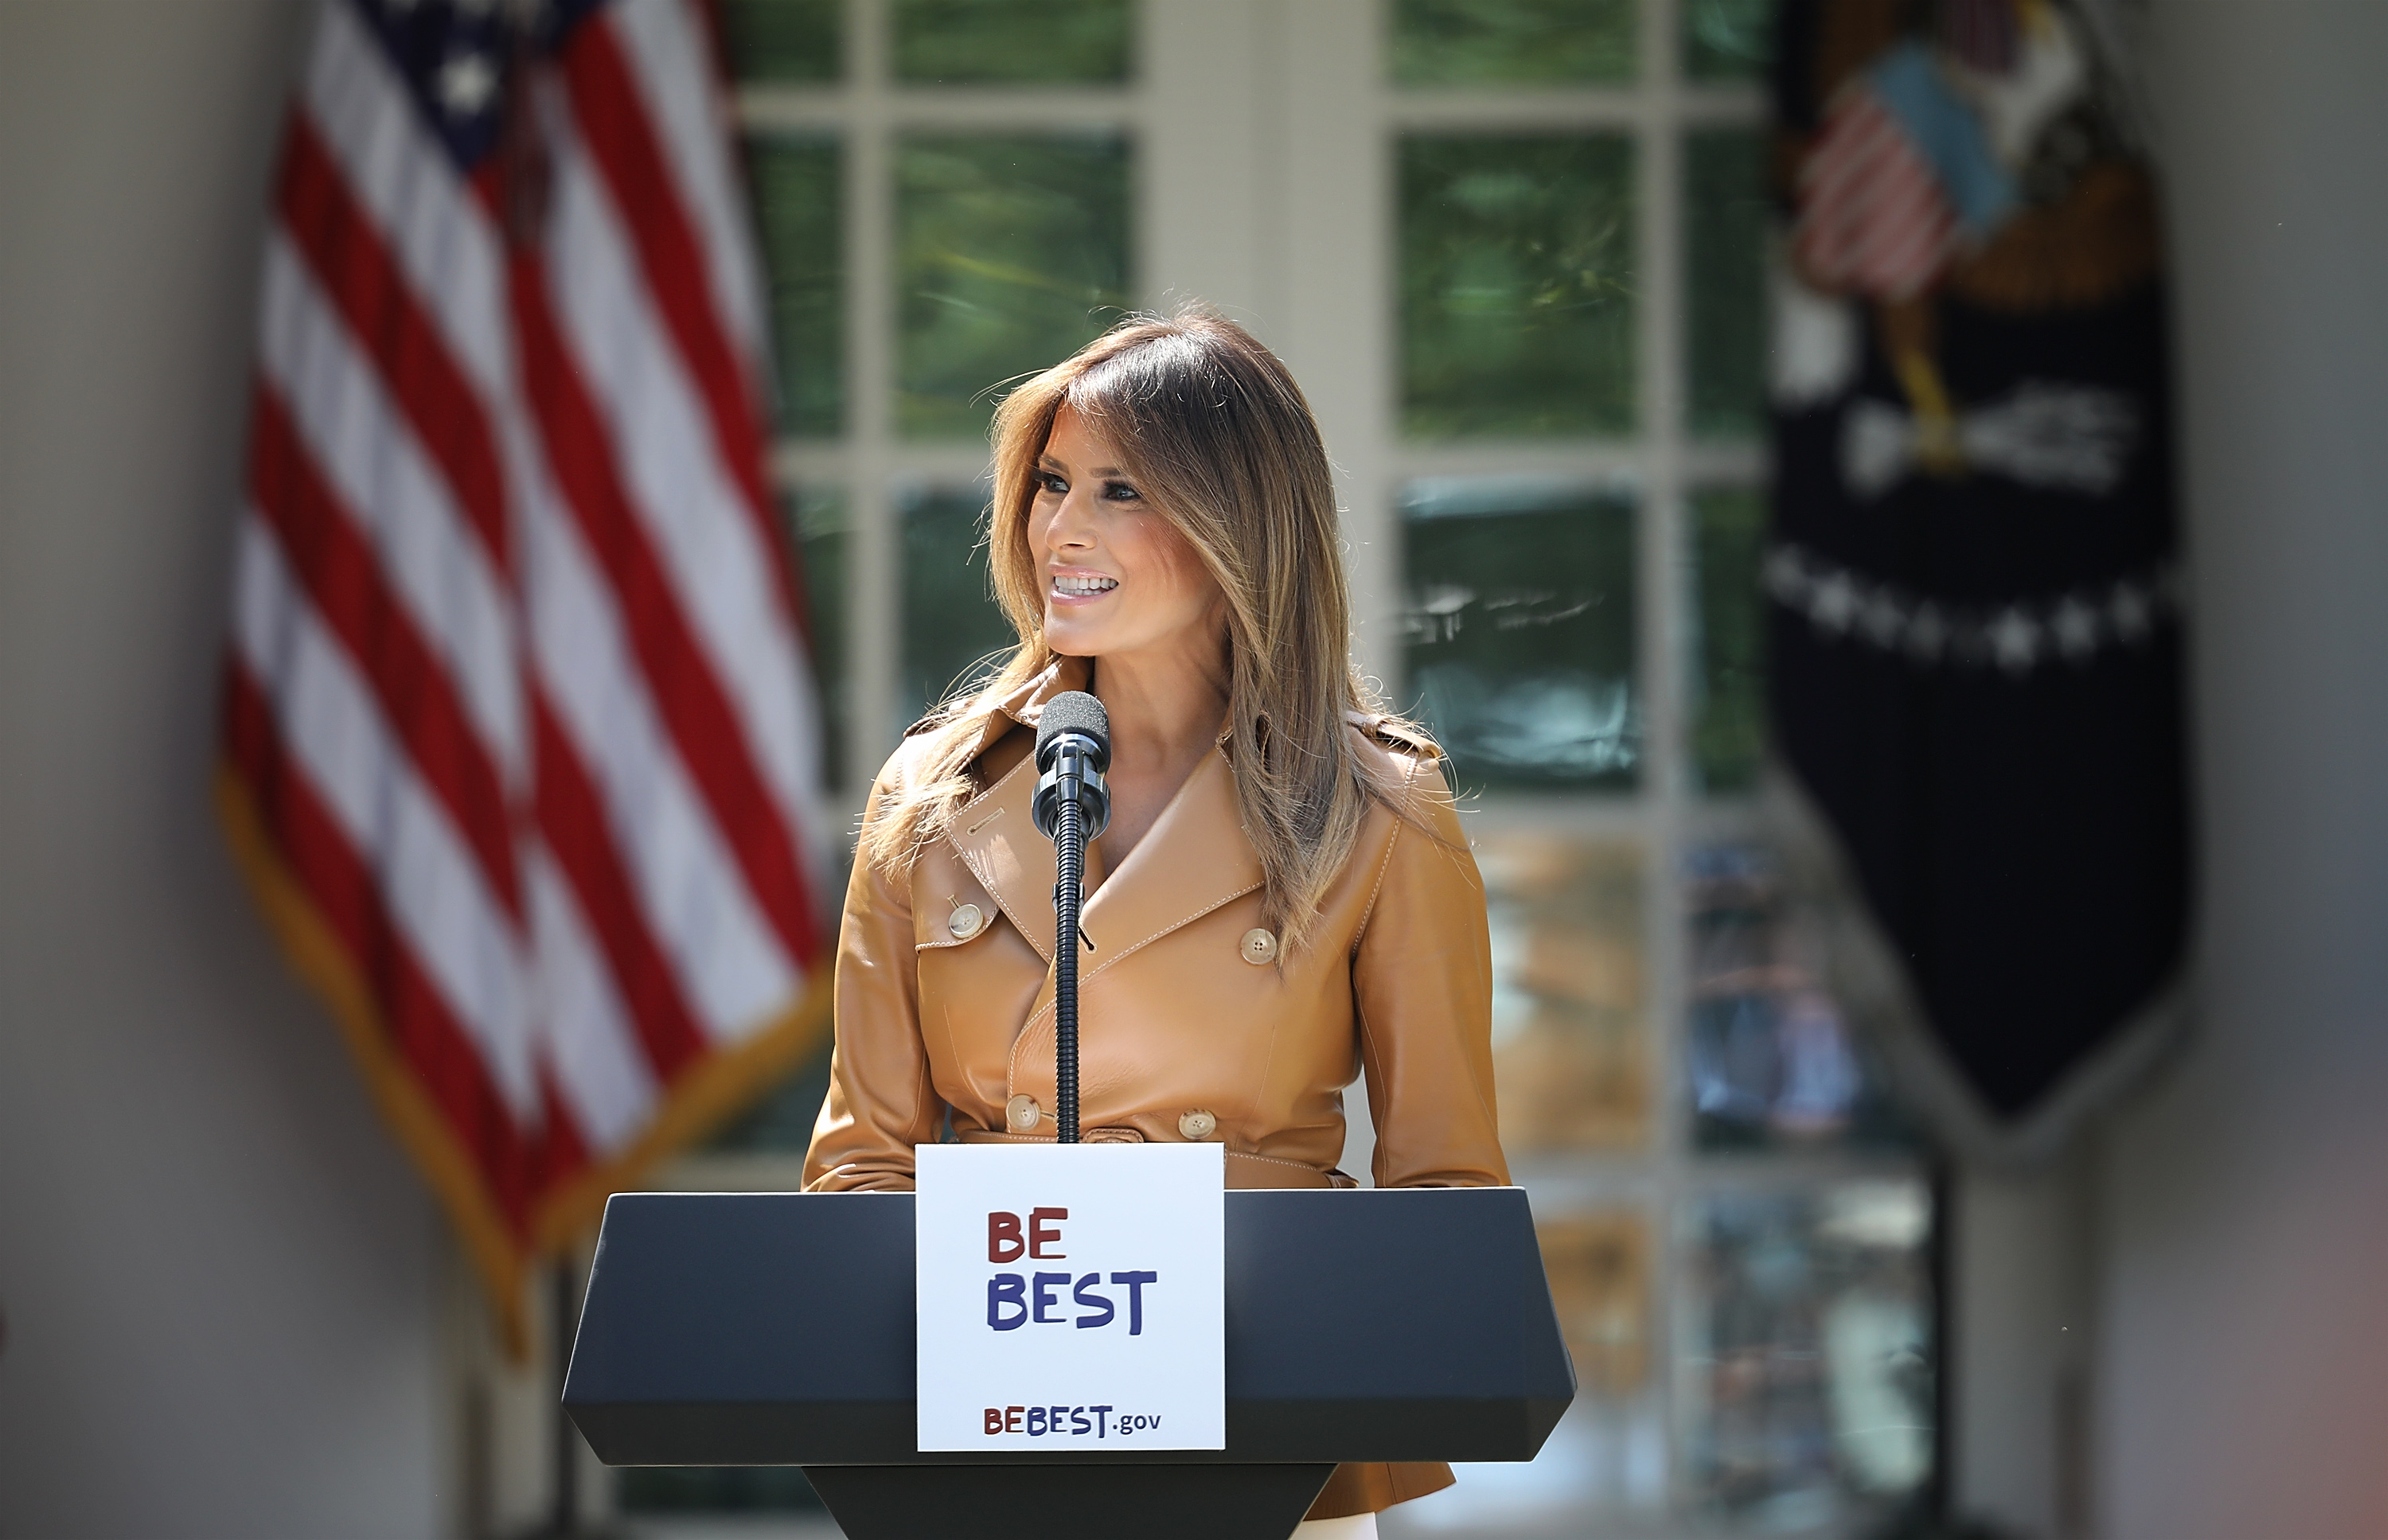 U.S. First Lady Melania Trump speaks in the Rose Garden of the White House May 7, 2018, in Washington, DC. Trump outlined her new initiatives, known as the Be Best program, during the event